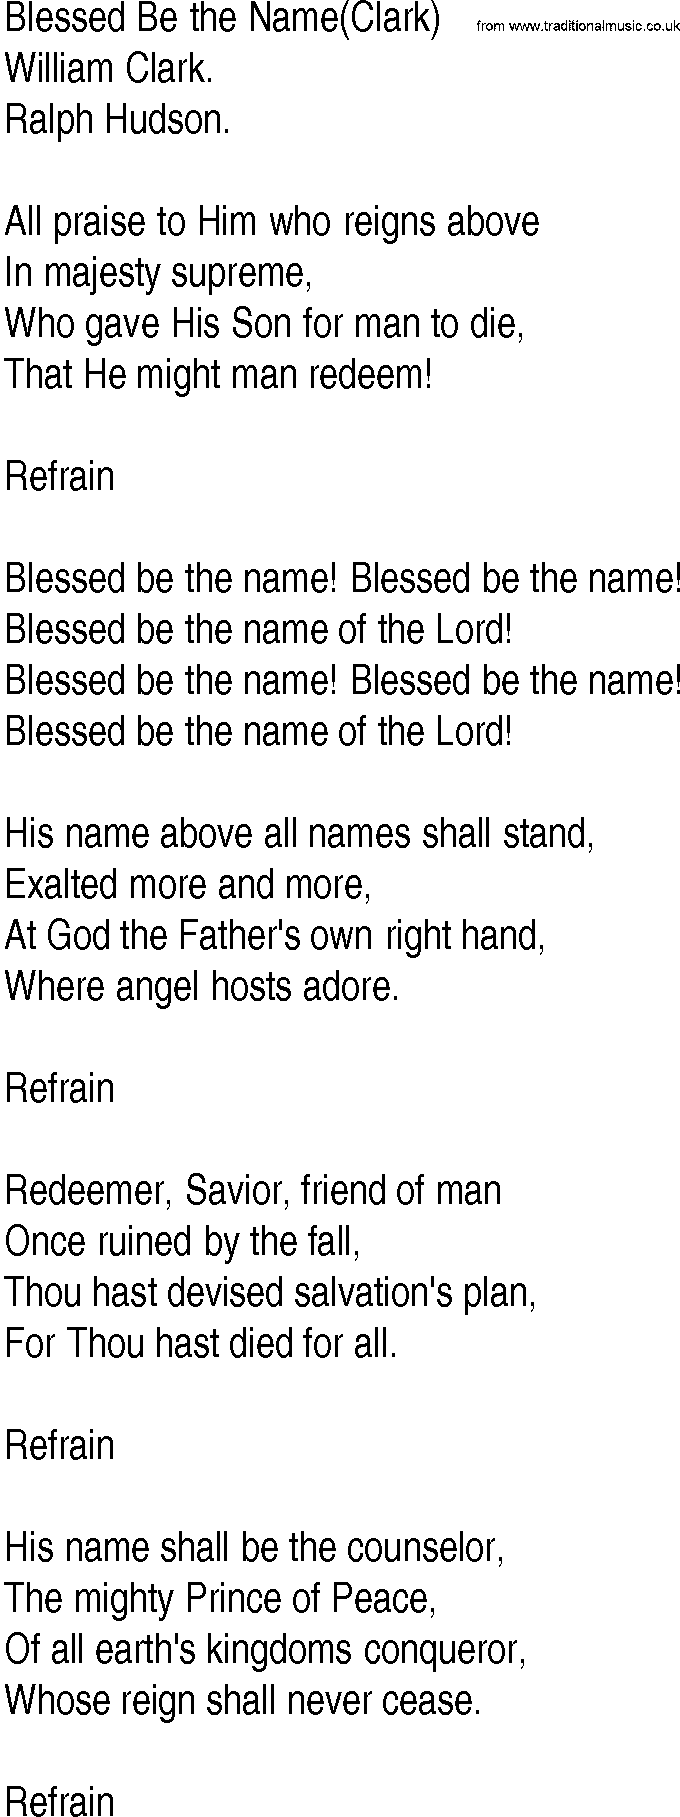 Blessed Be the Name - Hymn Lyrics